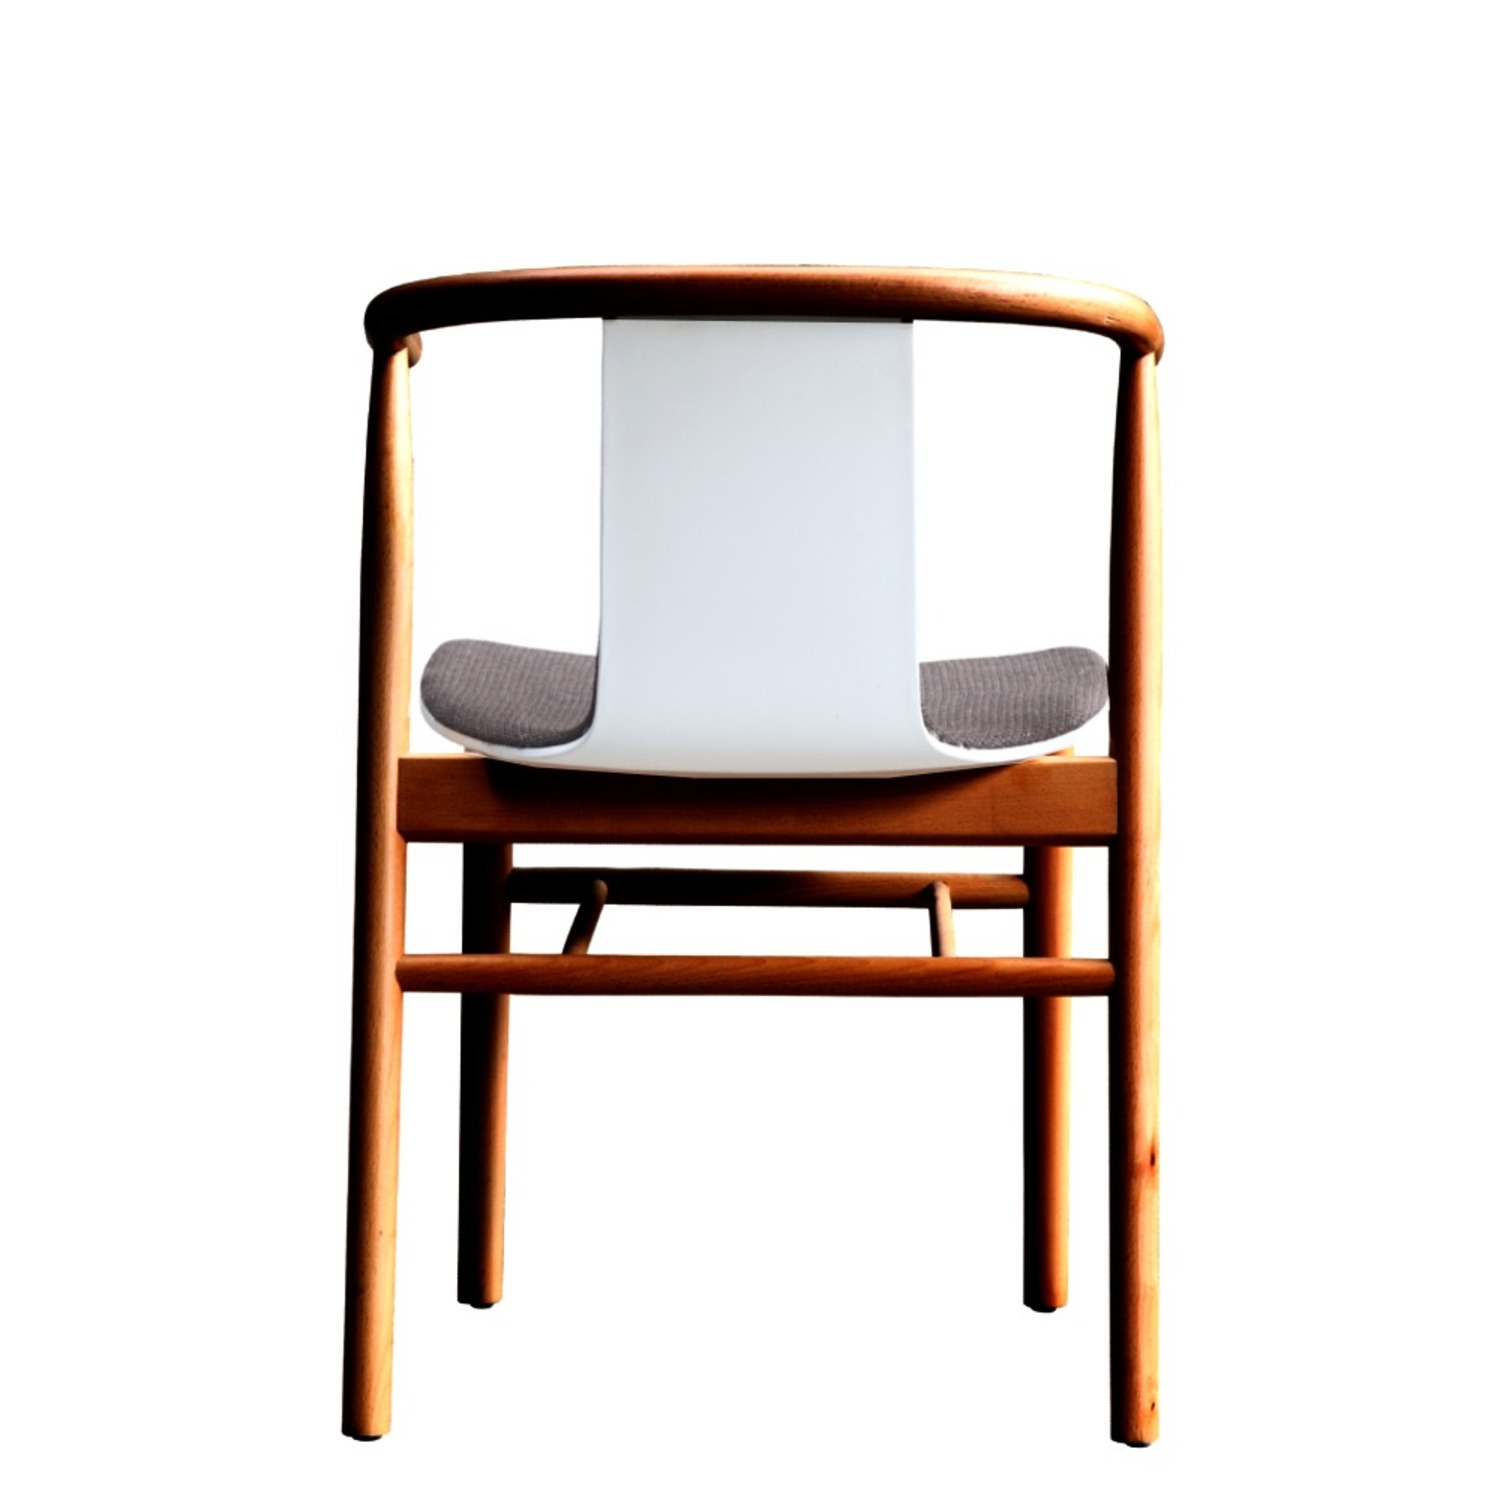 Side Chair In Walnut Wood Frame W/ Cotton Seat - image-2